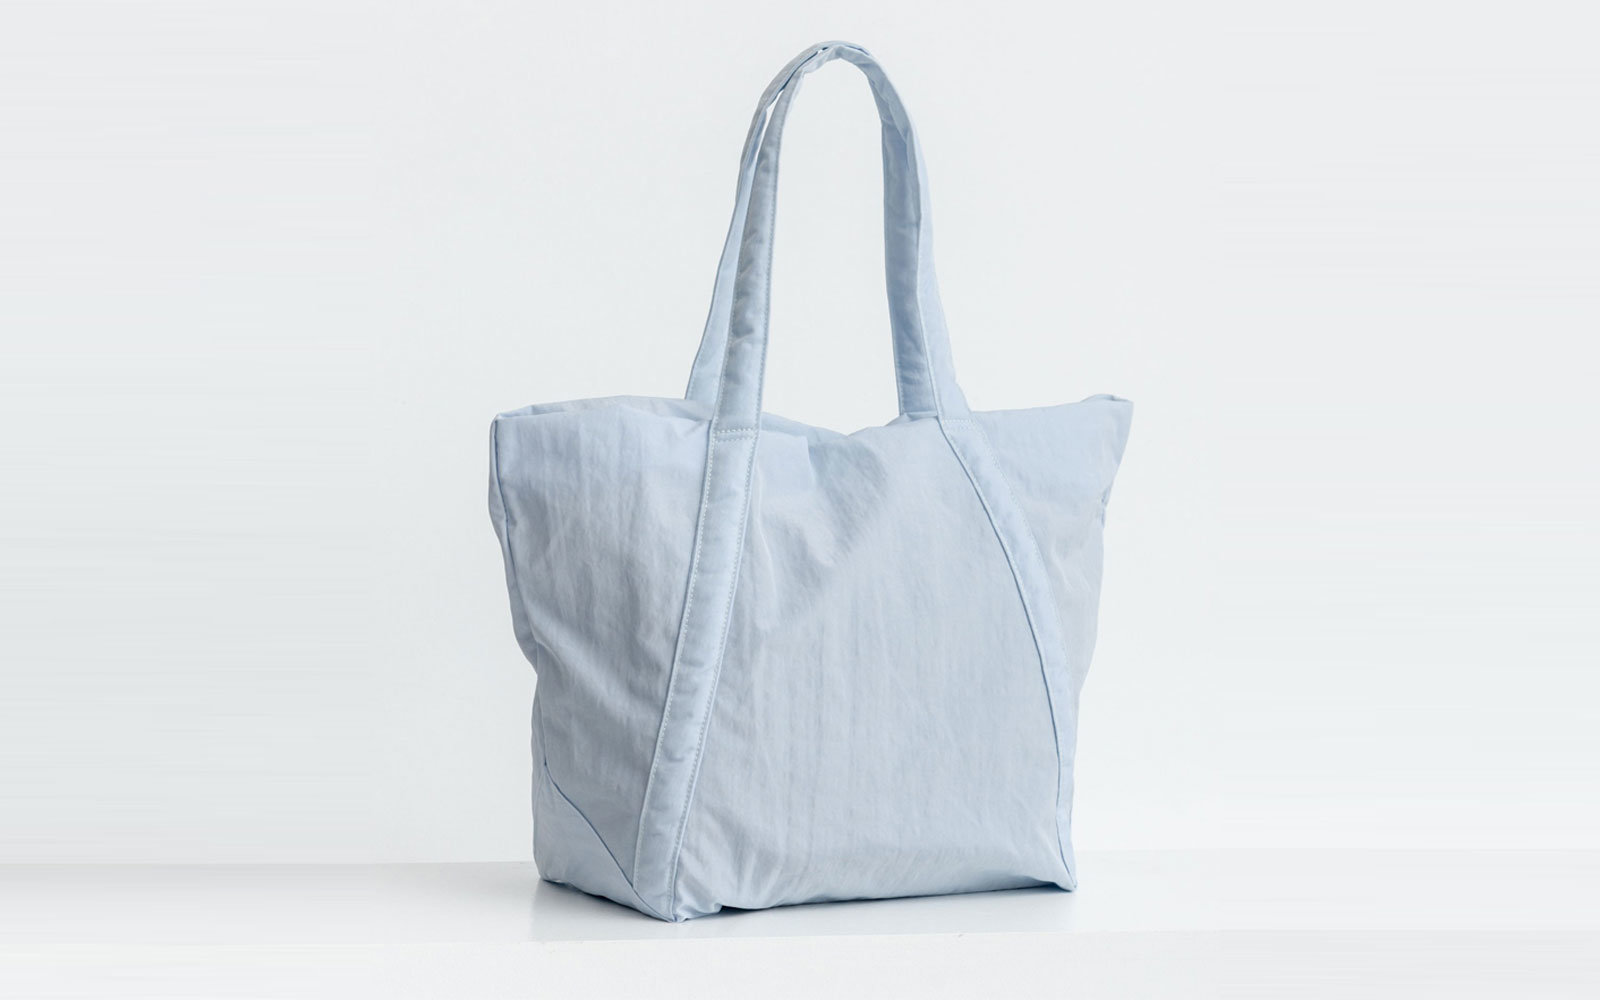 The Best Travel Tote Bags   Travel + Leisure